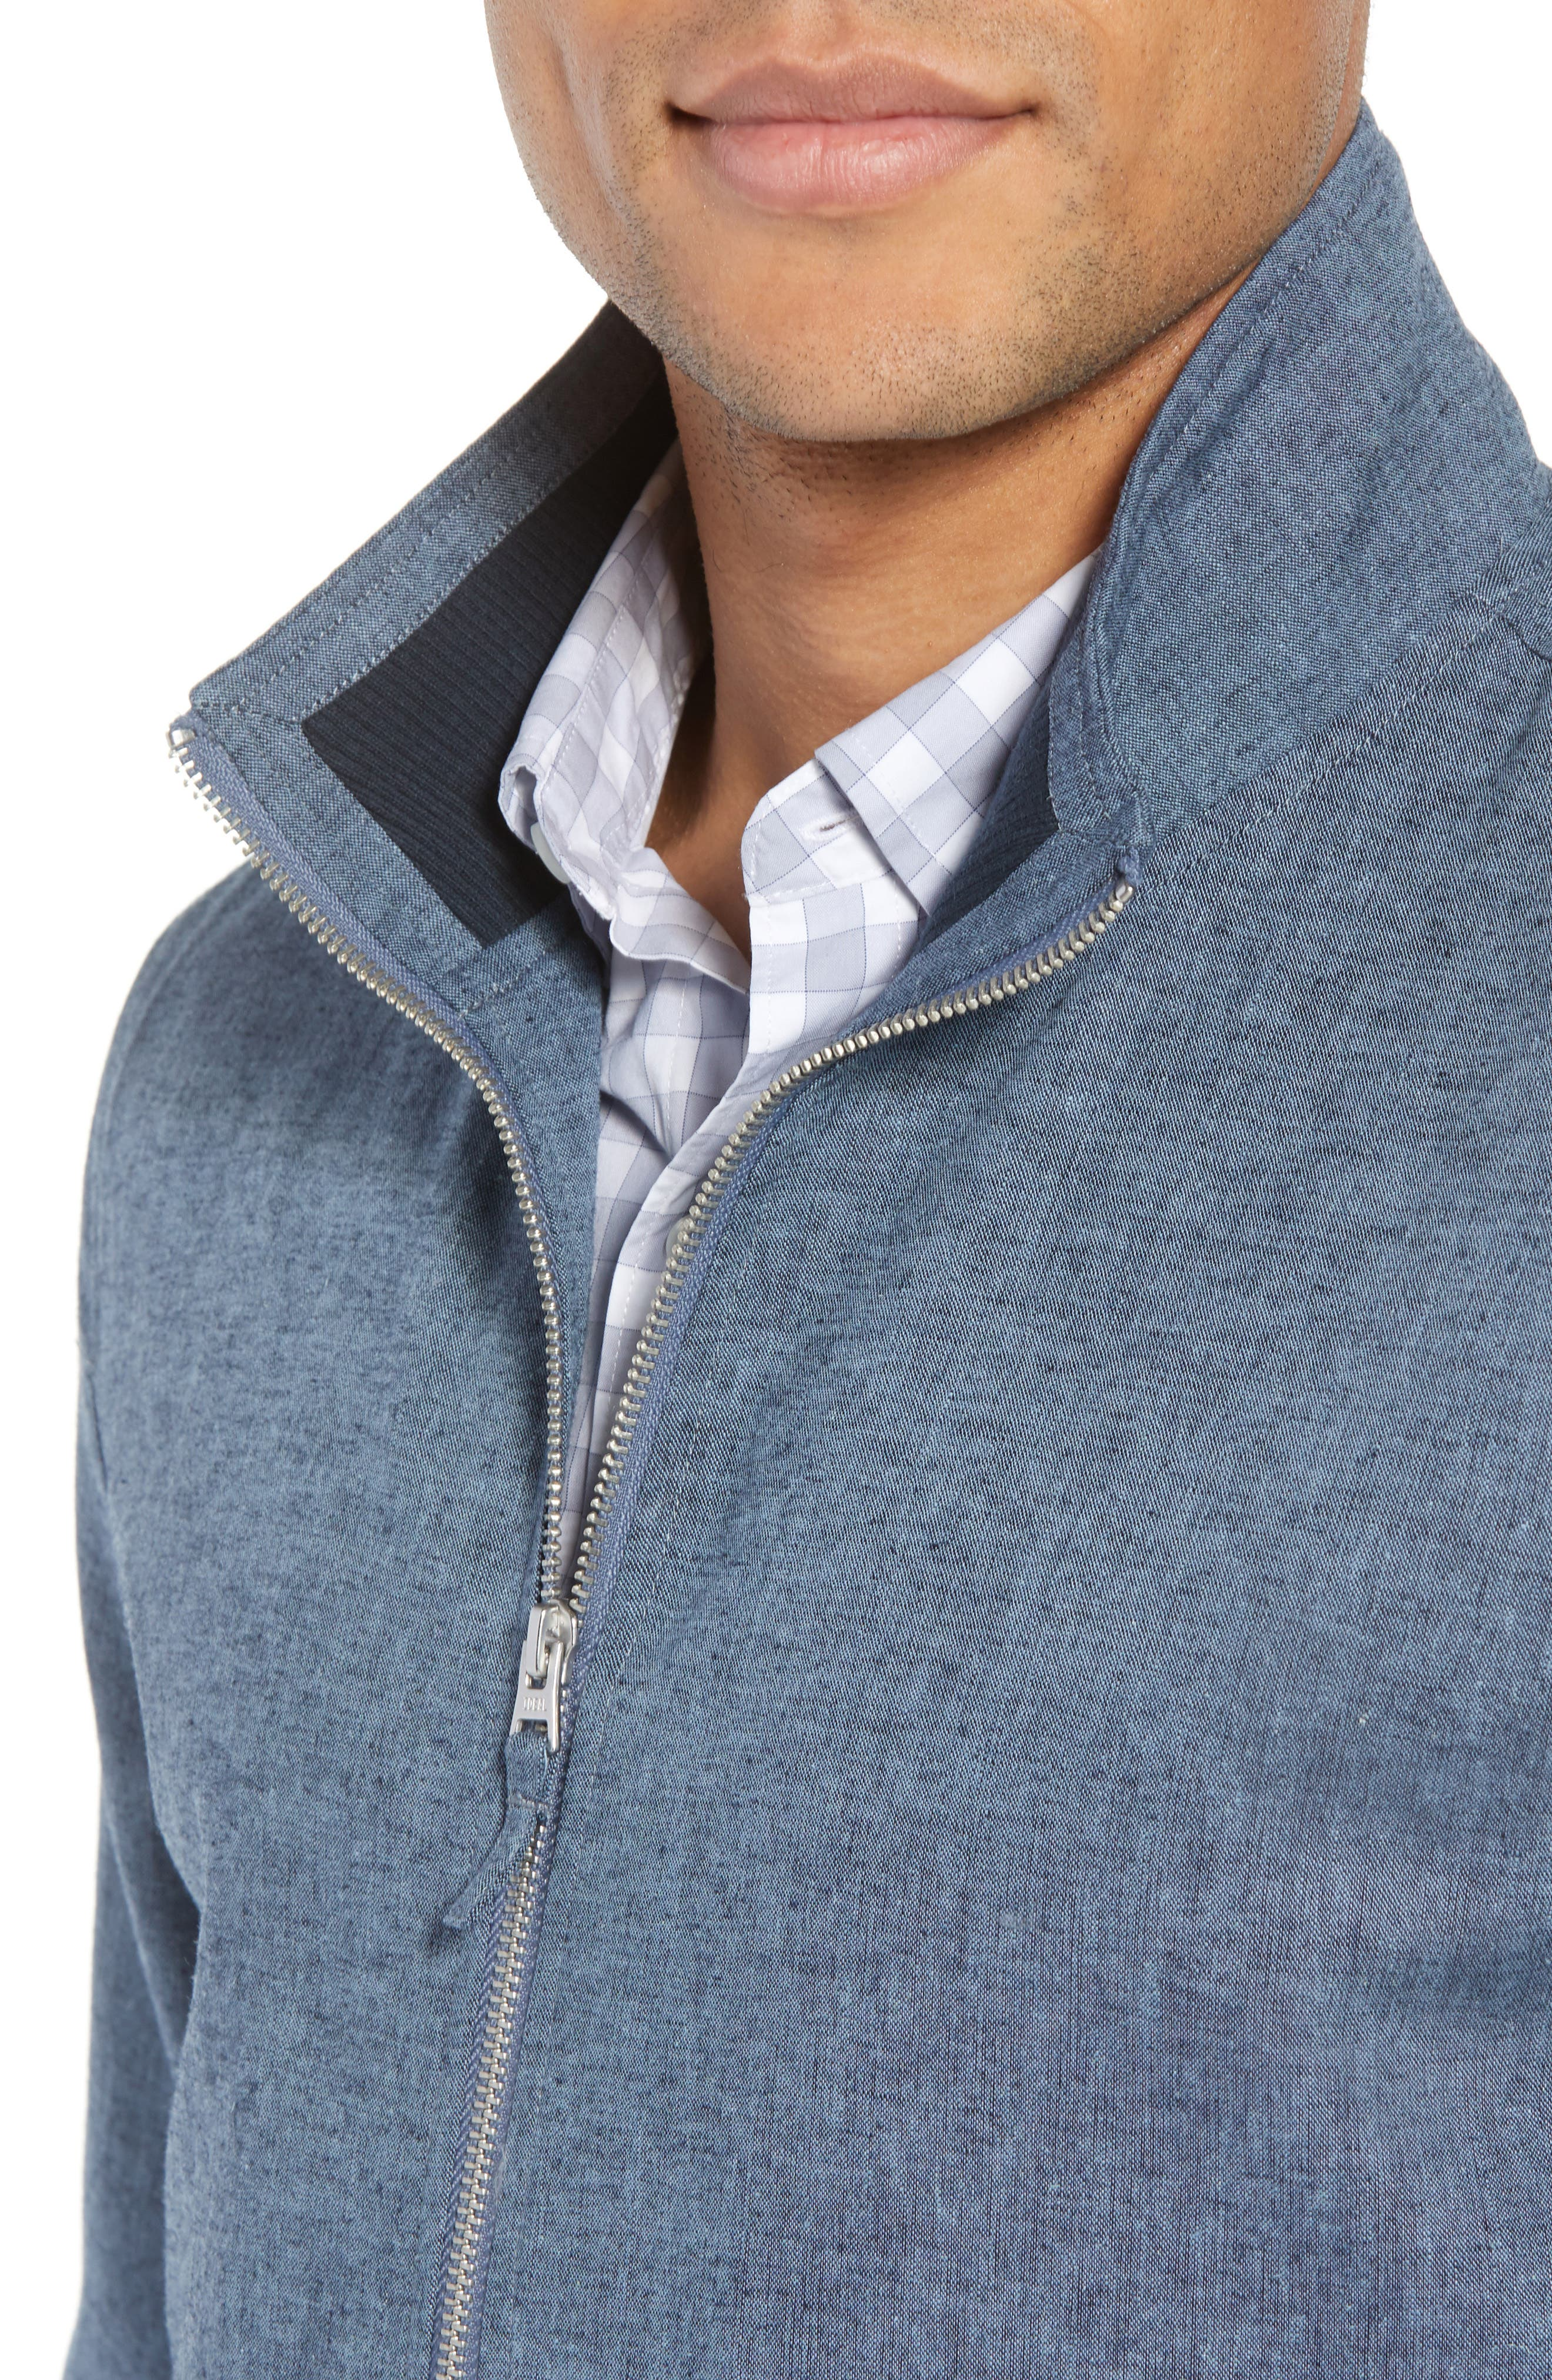 Linen & Cotton Chambray Bomber Jacket,                             Alternate thumbnail 4, color,                             Solid - Chambray